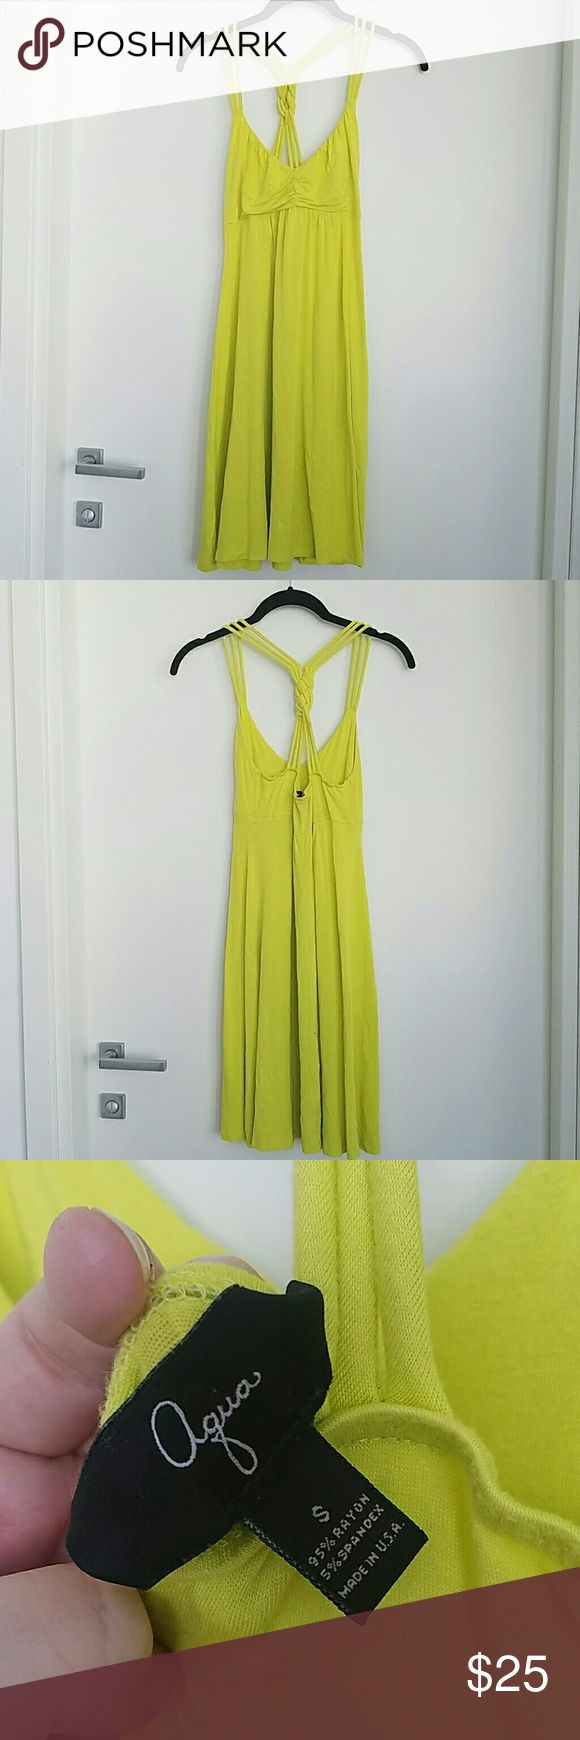 "Neon Yellow Beach Dress Bloomingdales semi-Sheer bright yellow beach cover up summer dress 🌞 fits true to size.  About 36"" from top of straps to hem, so not a super short dress.  Bought on posh but I didnt realize it was sheer.  Never worn 💕 Offers welcome through the offer button 😊 no trades no PayPal Aqua Dresses Midi"